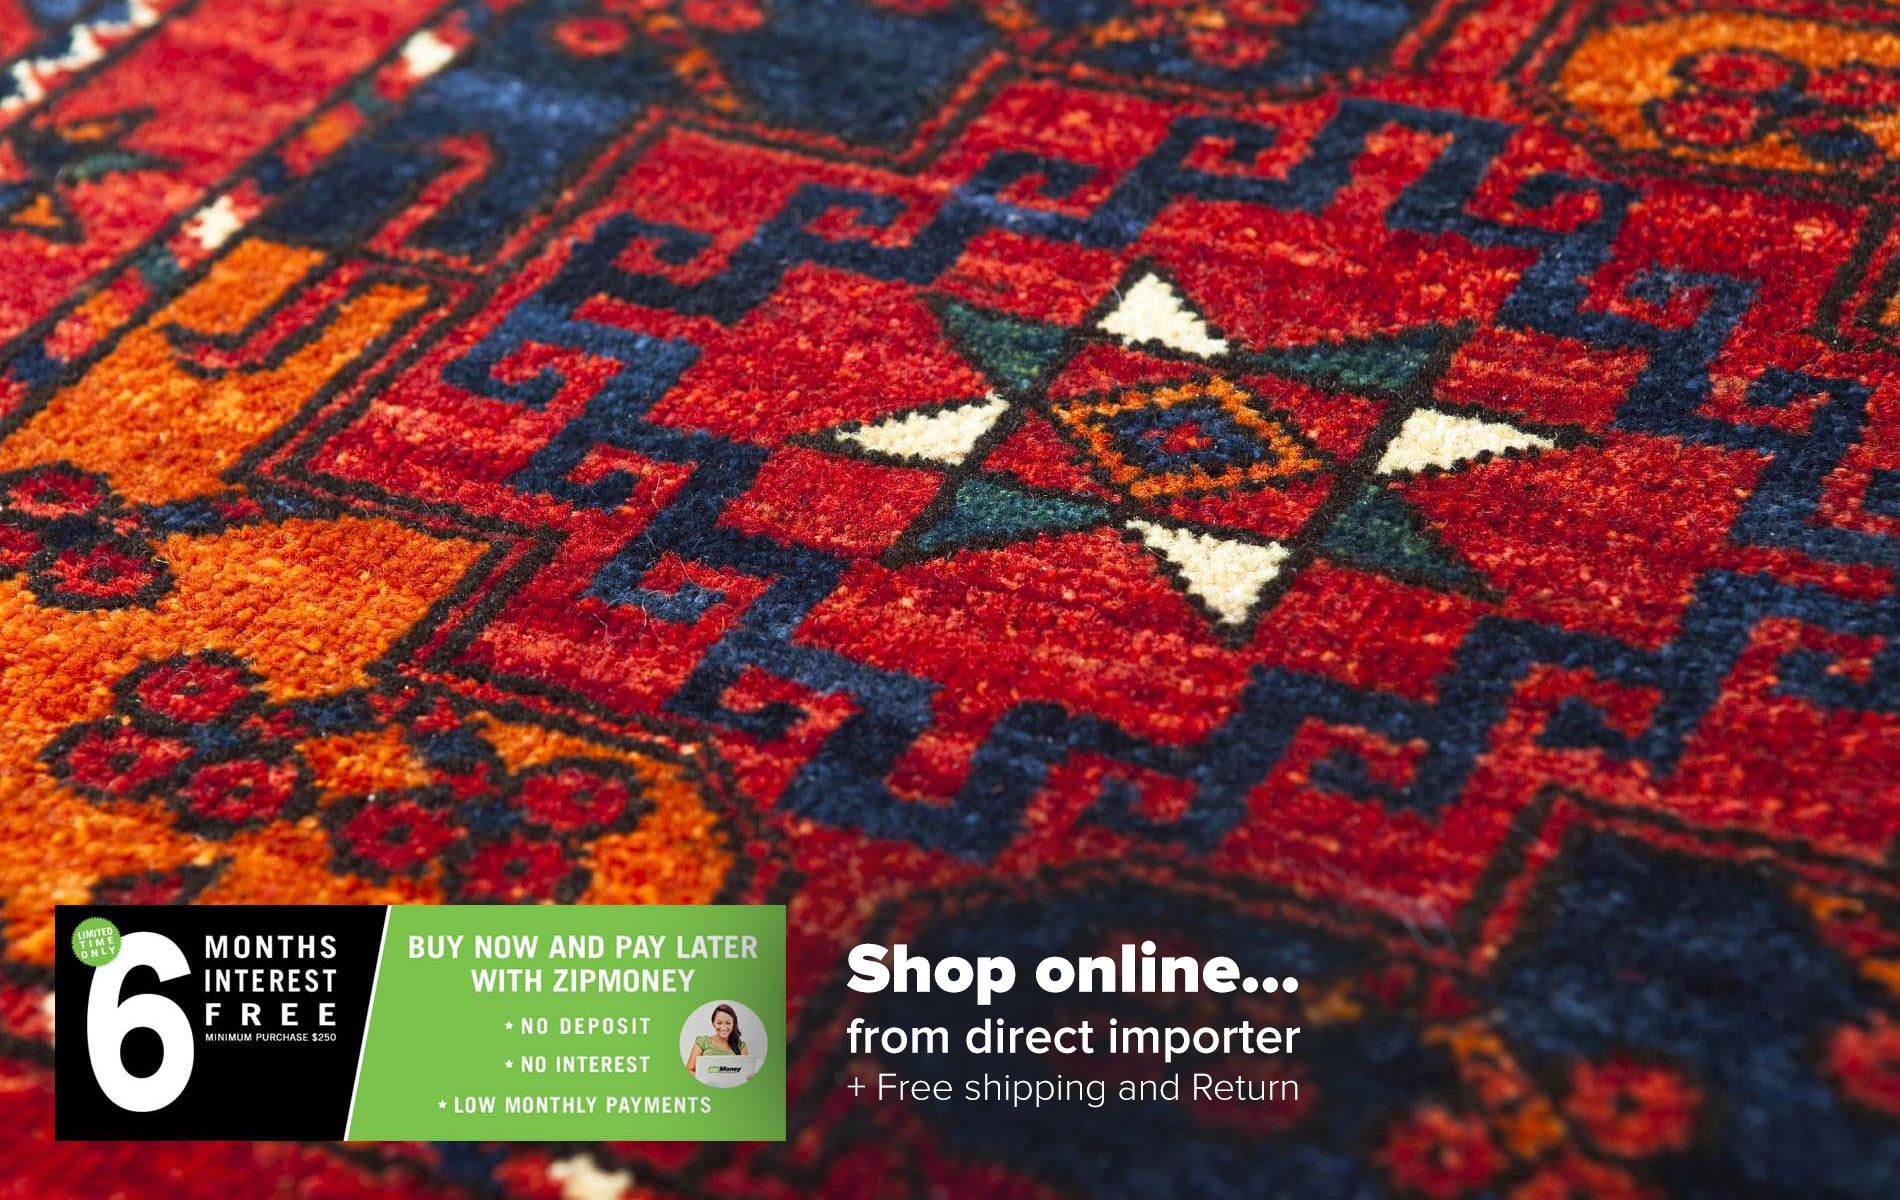 Persian Rugs Melbourne Sydney Perth Adelaide Canberra Australia Offers High Quality Handmade Designer Oriental Carpets Online On 6